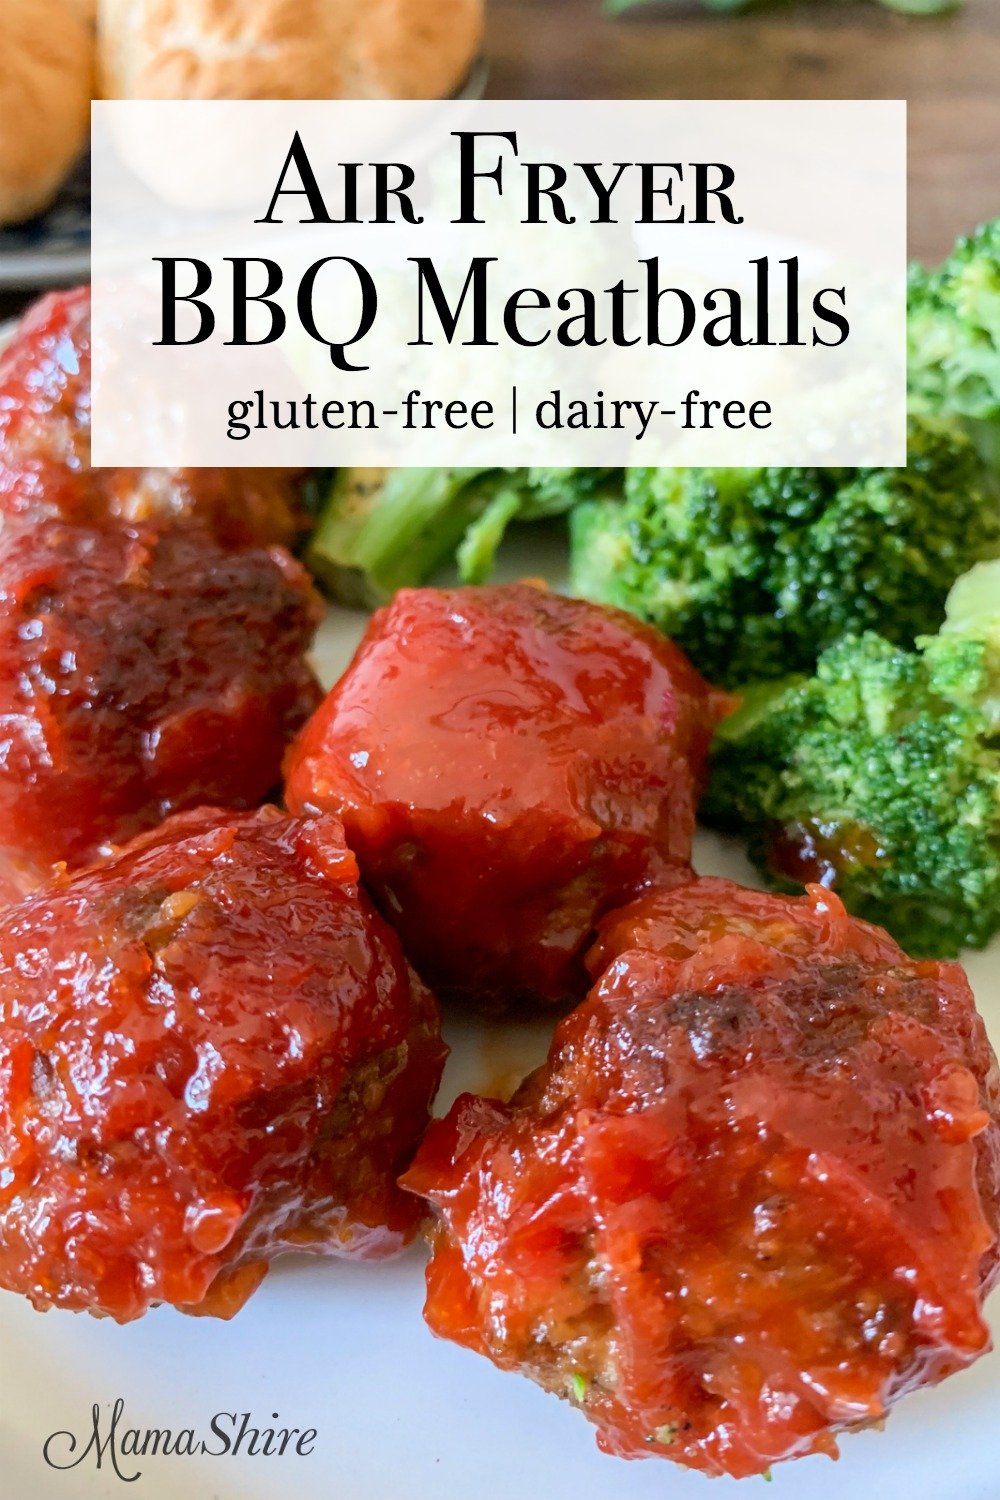 Air Fryer BBQ Meatballs on a plate with broccoli.